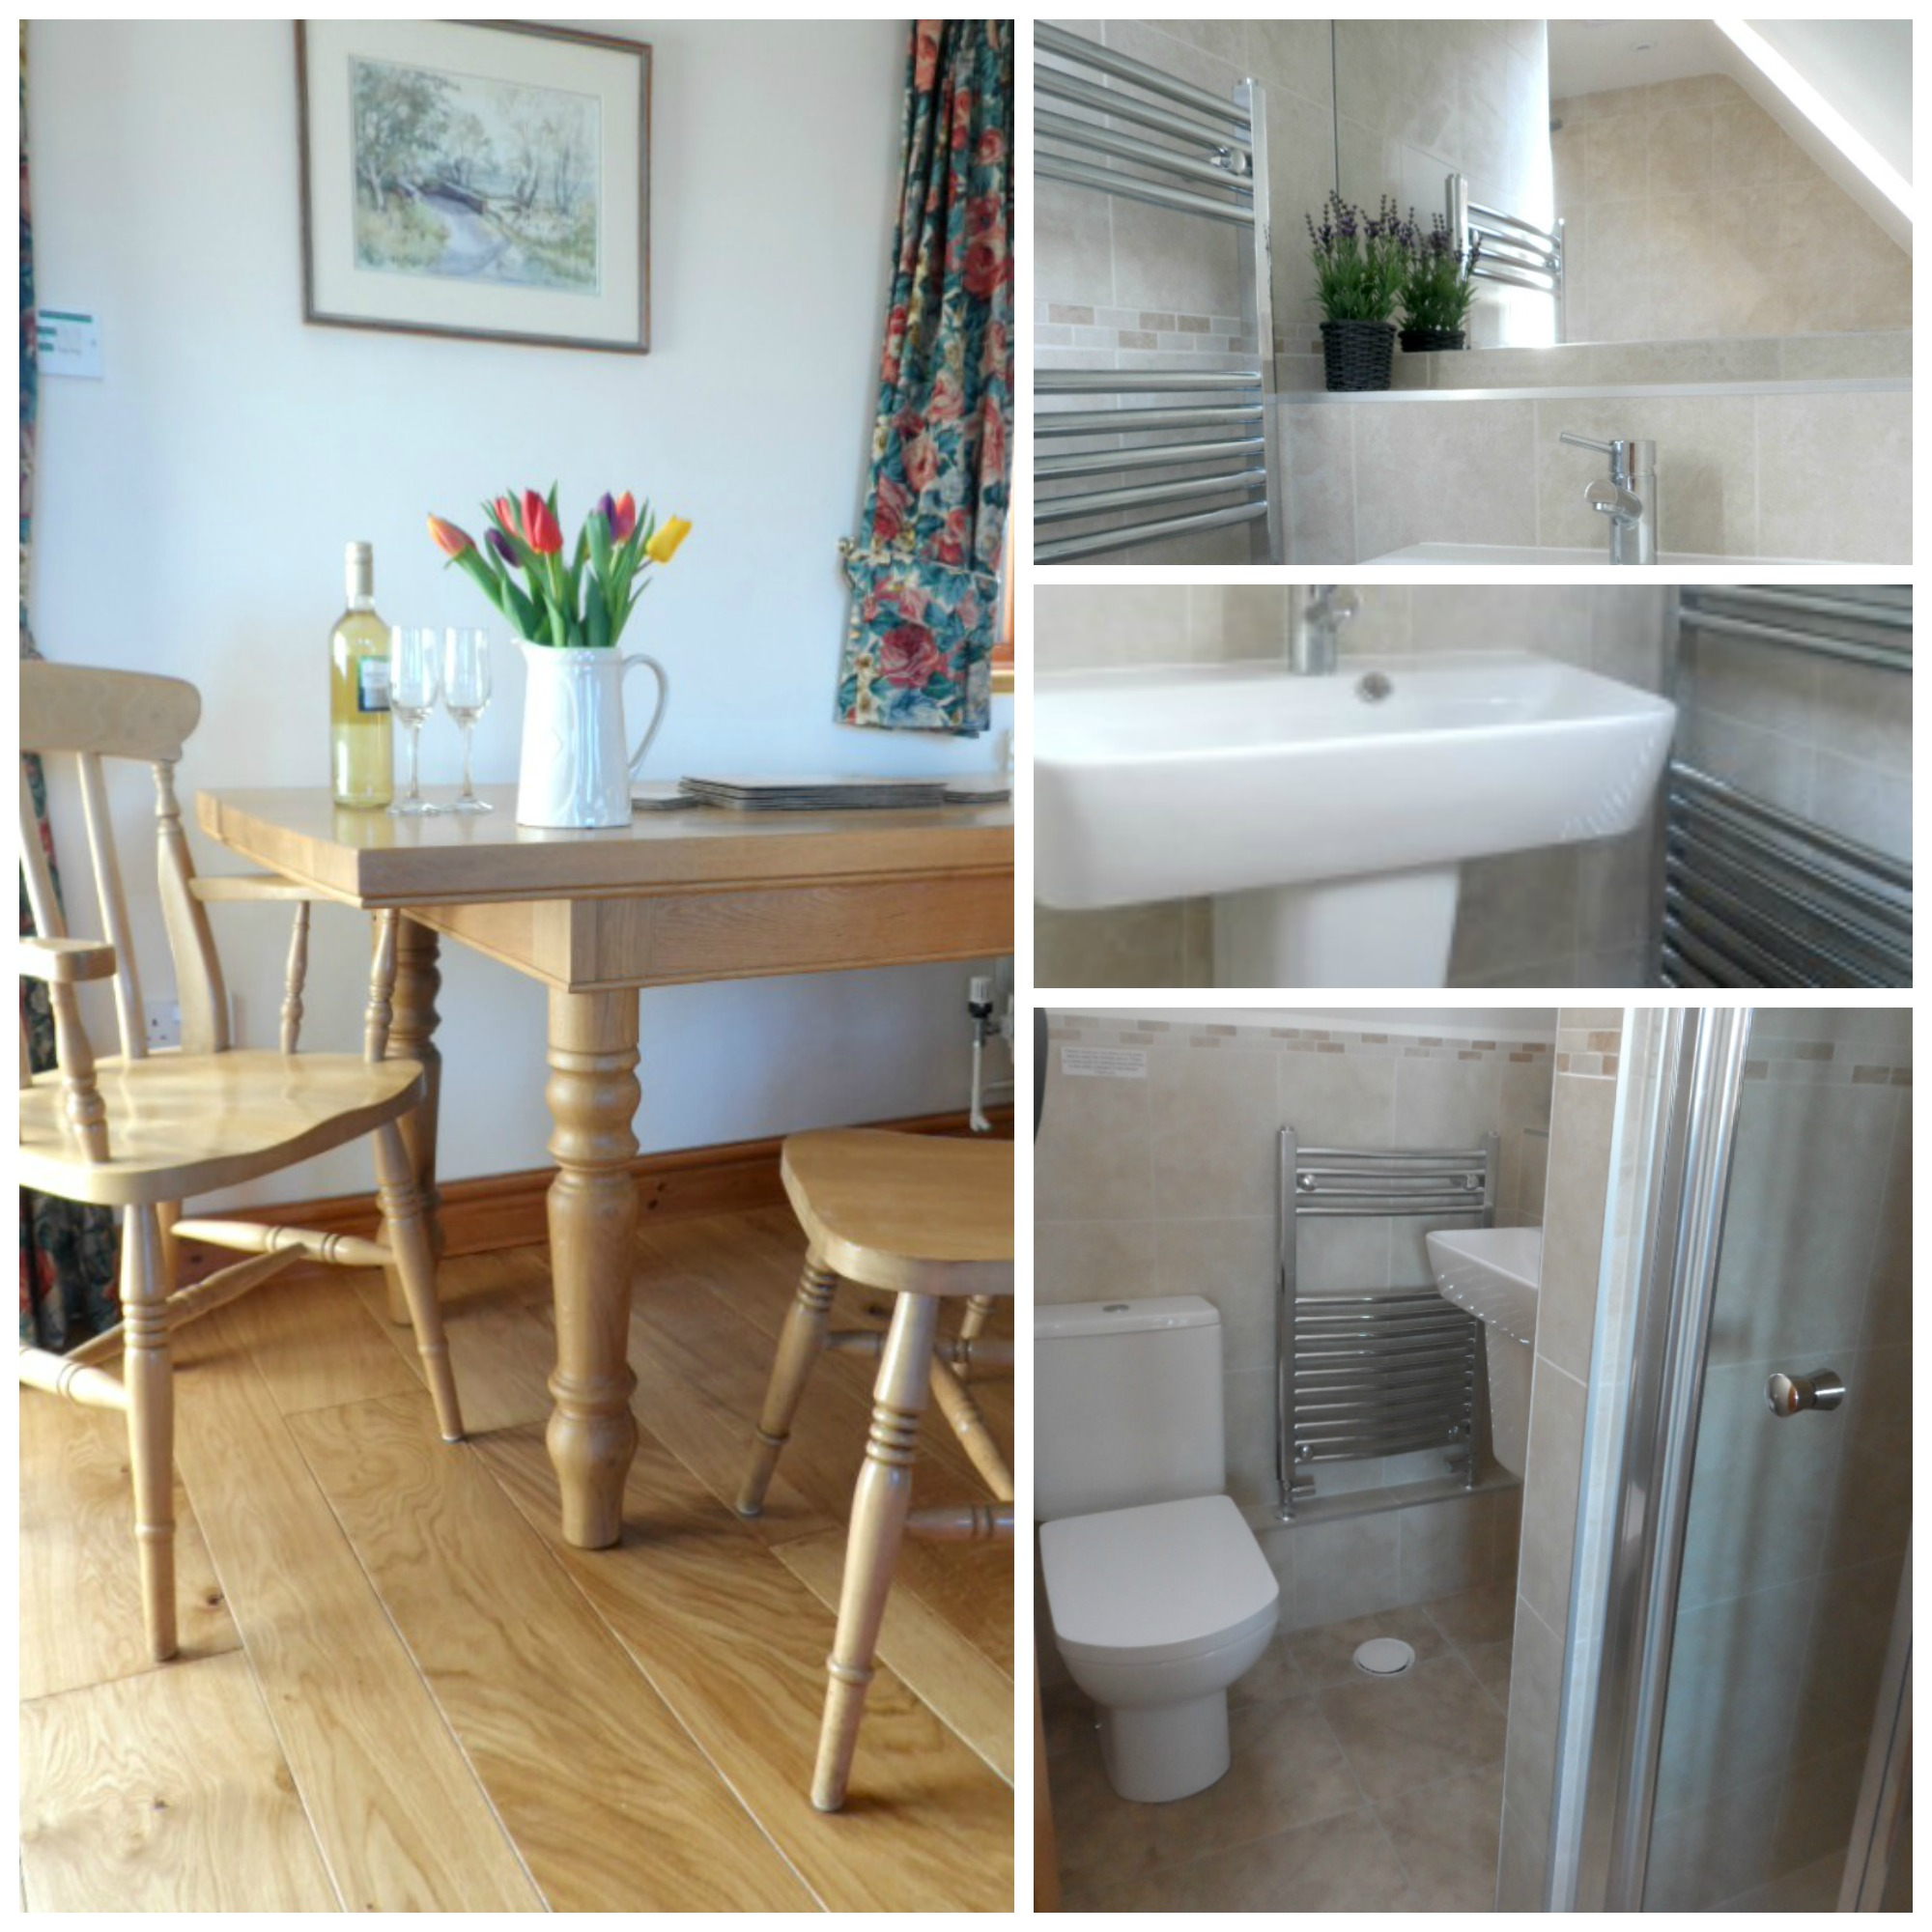 New Bathrooms and Oak Flooring in Sleeplate Cottage, Warwickshire stay in a farm cottage Warwickshire near Stratford